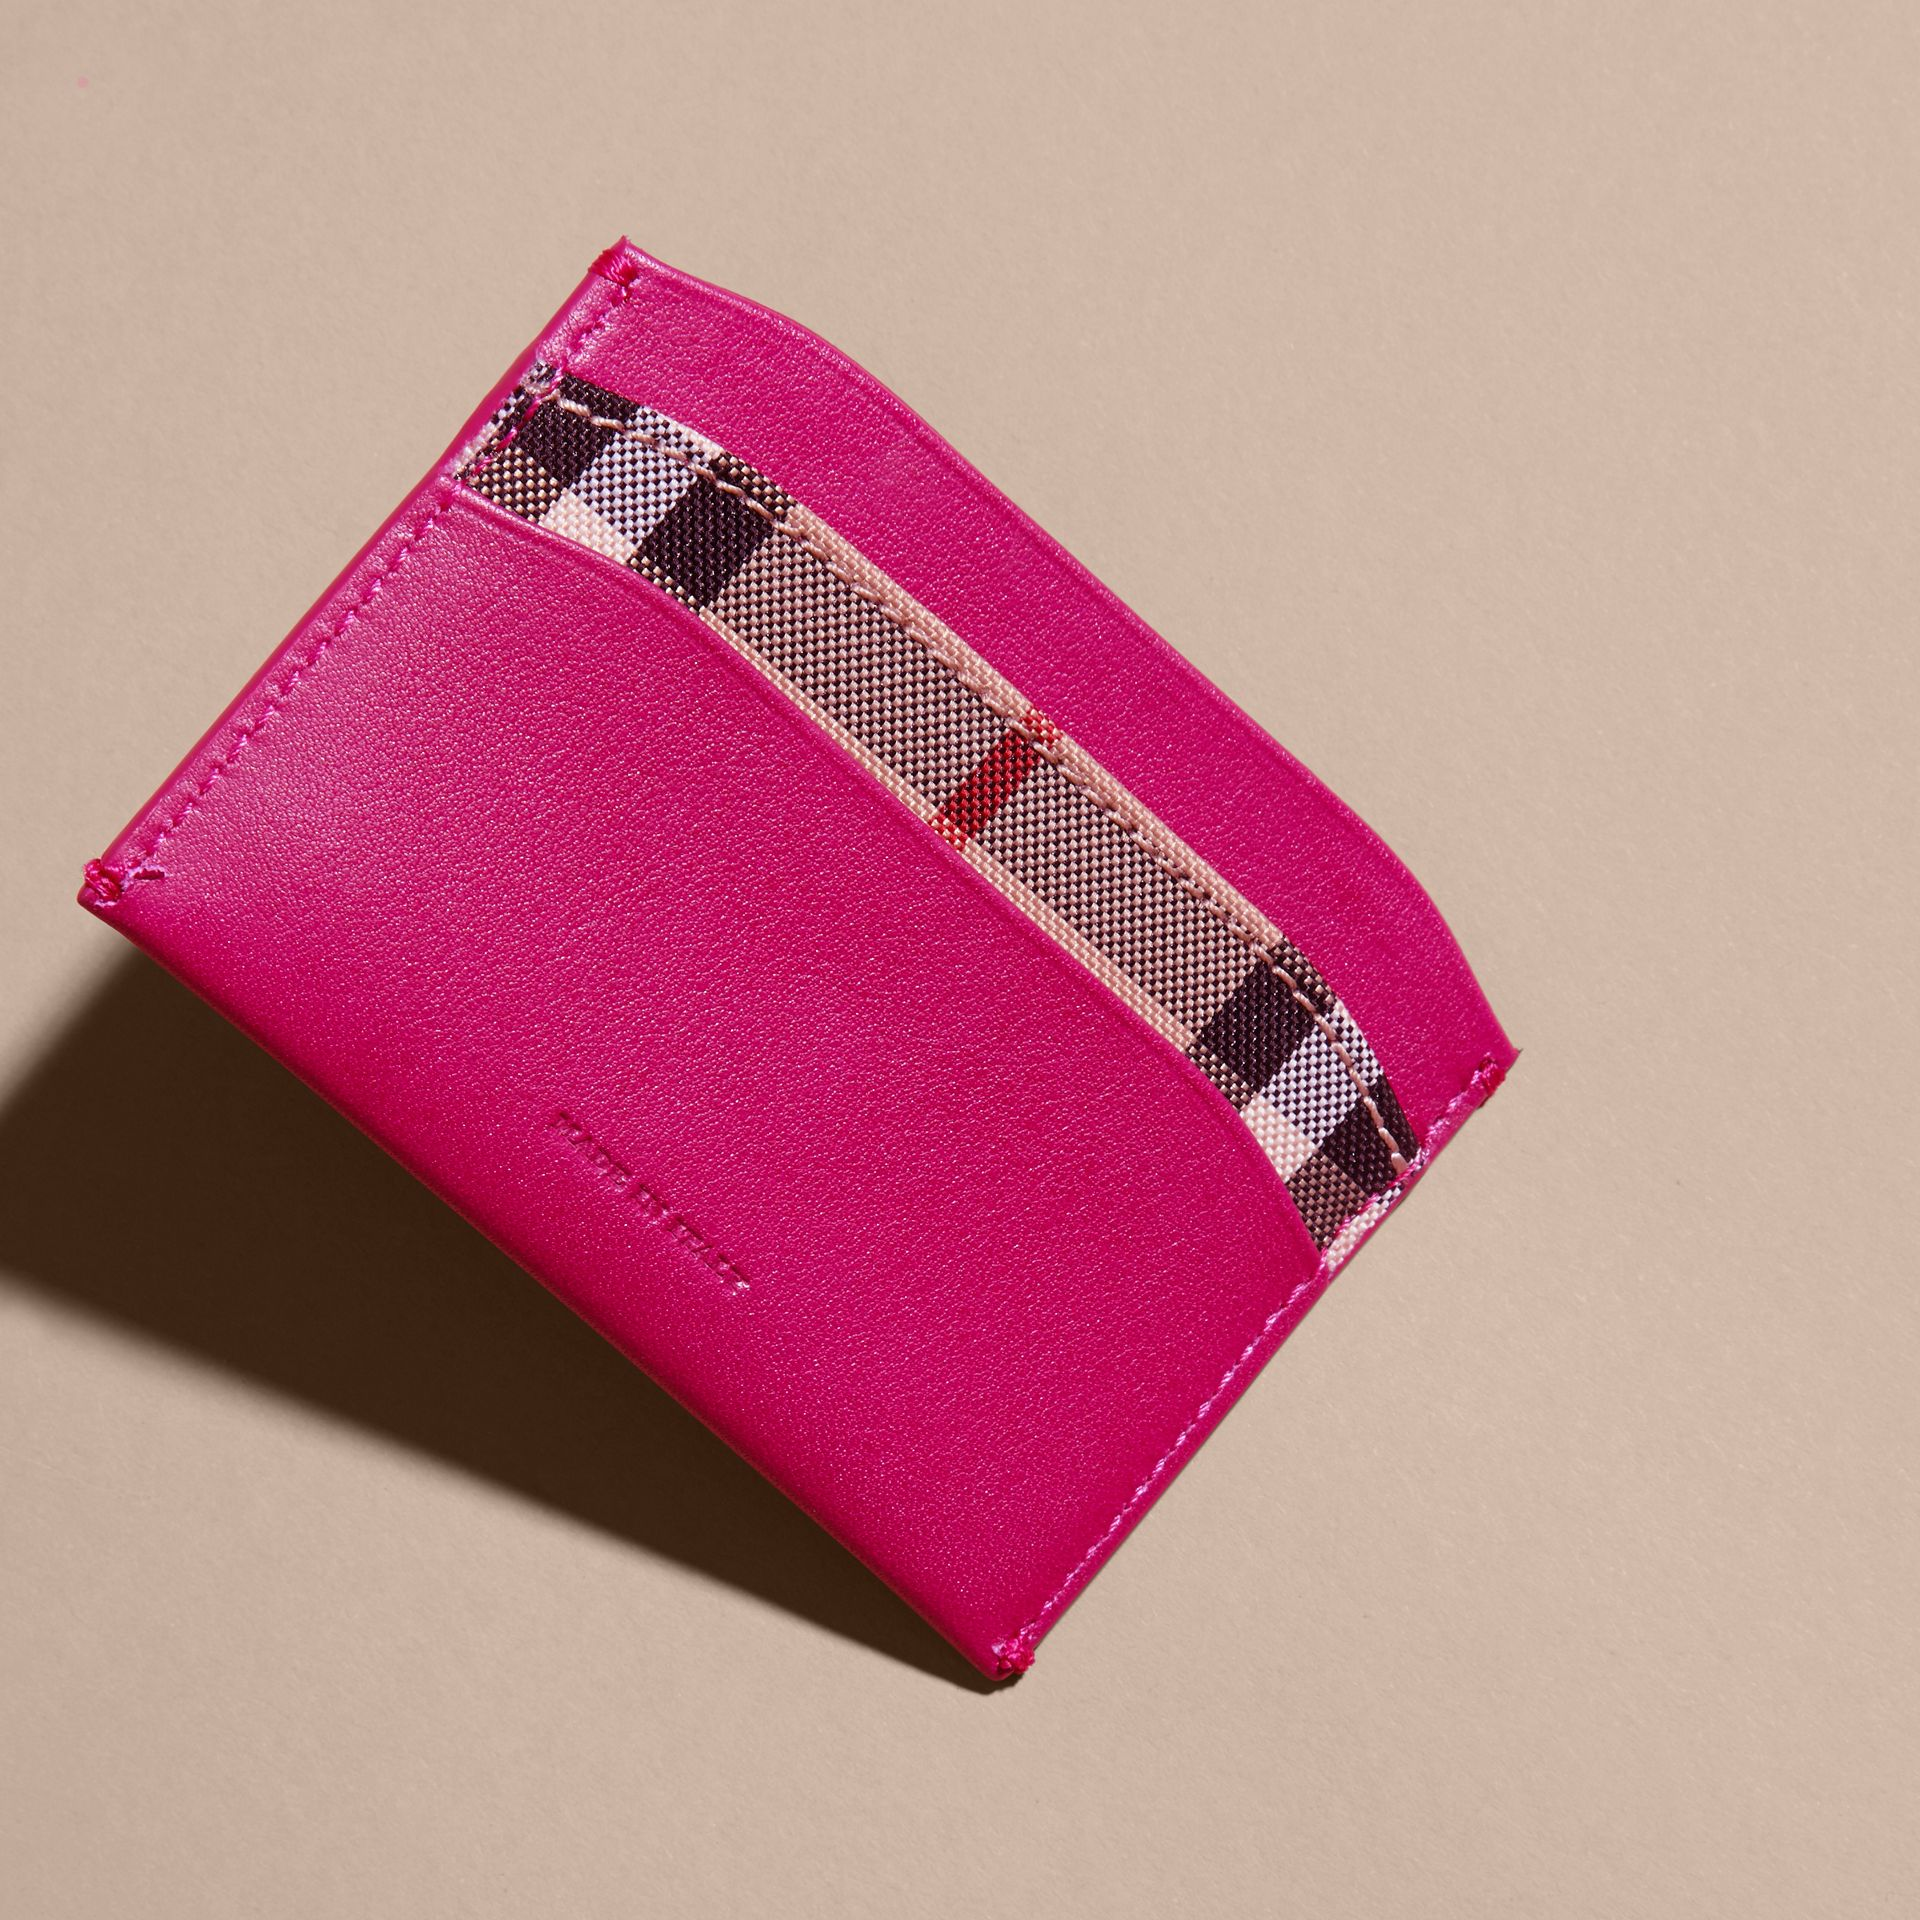 Brilliant fuchsia Check and Leather Card Case Brilliant Fuchsia - gallery image 4